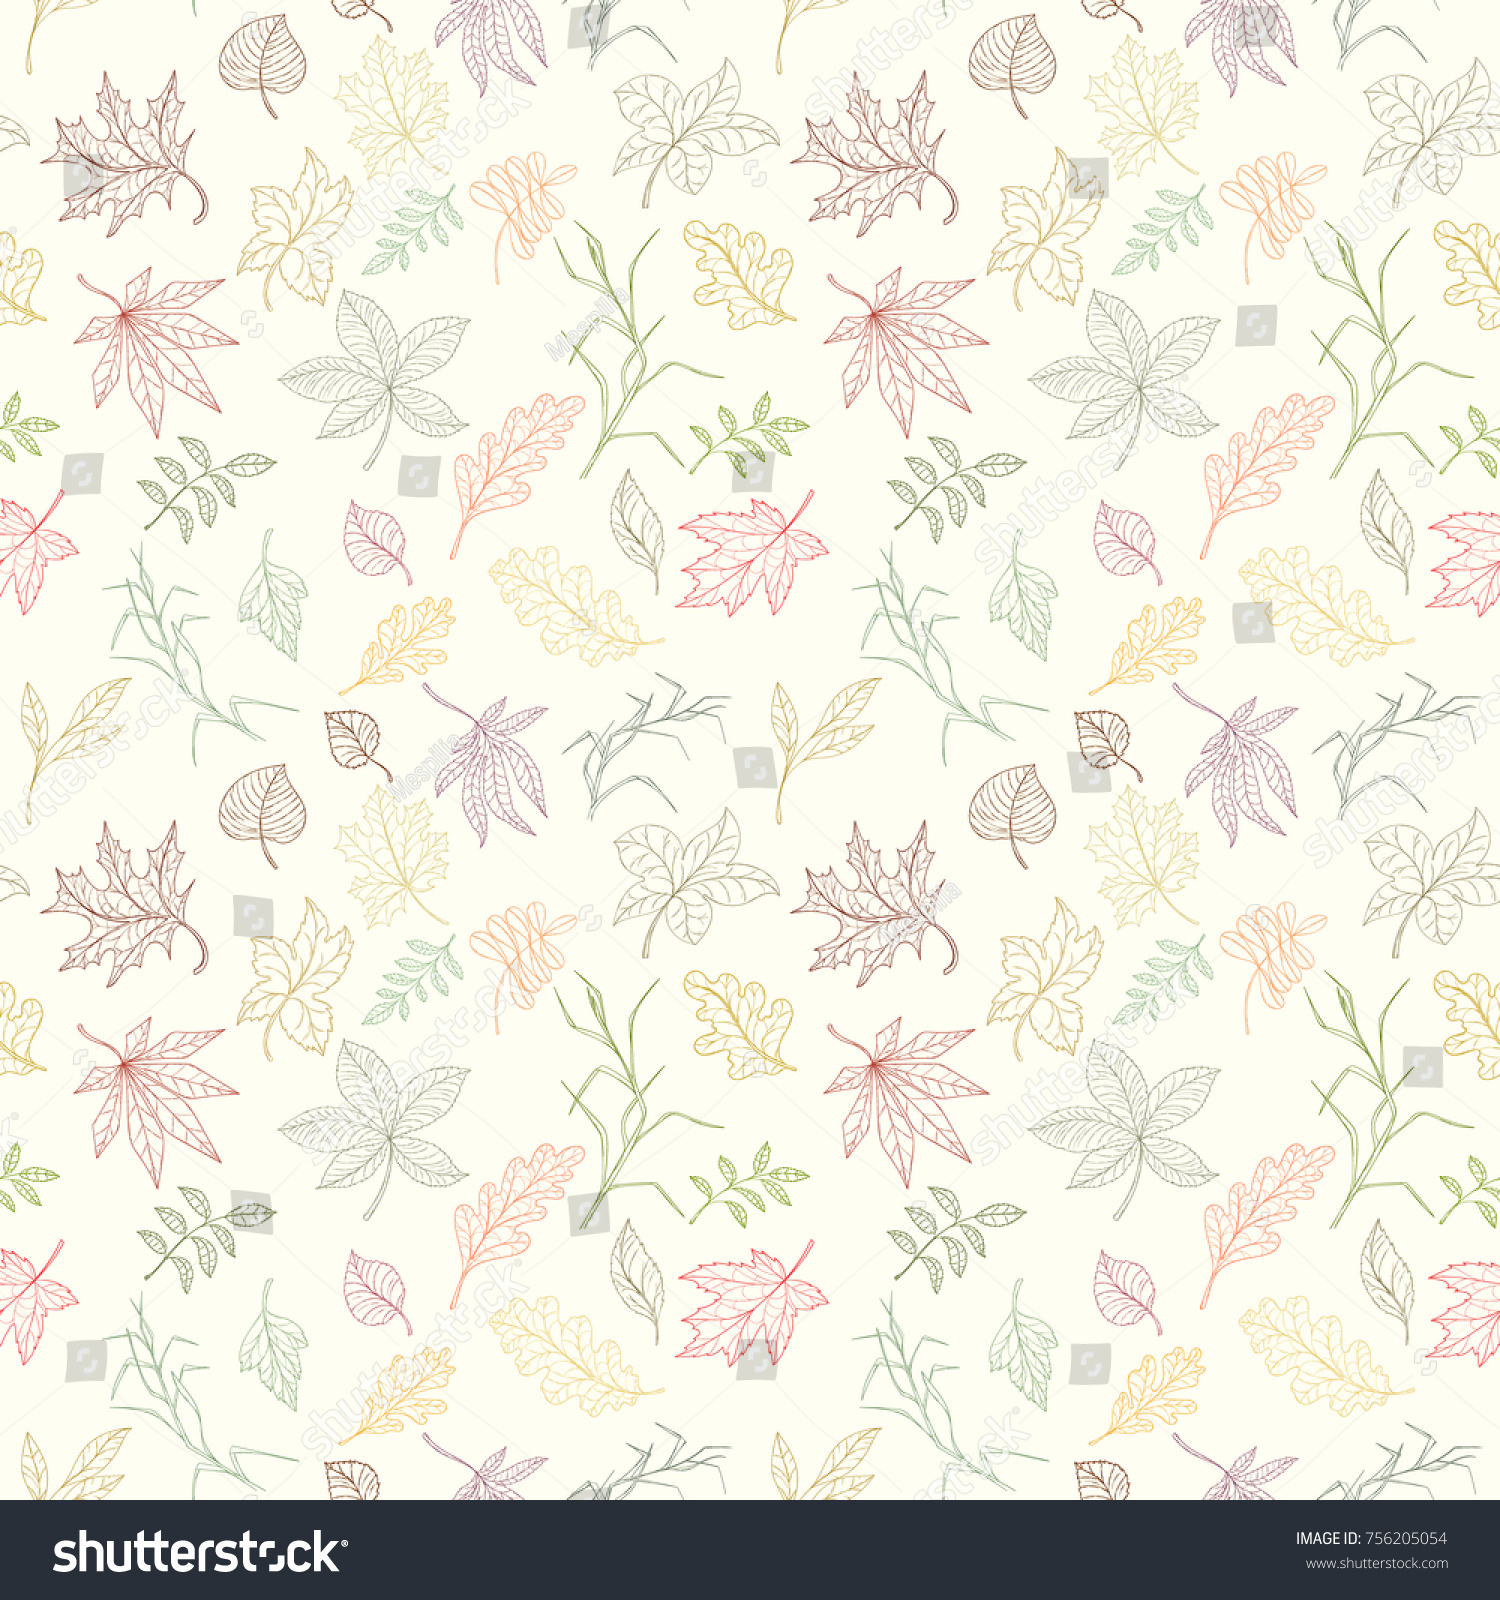 Assortment Autumn Seamless Pattern Wallpaper Website Stock Vector ... for Light Background Patterns For Websites  111bof